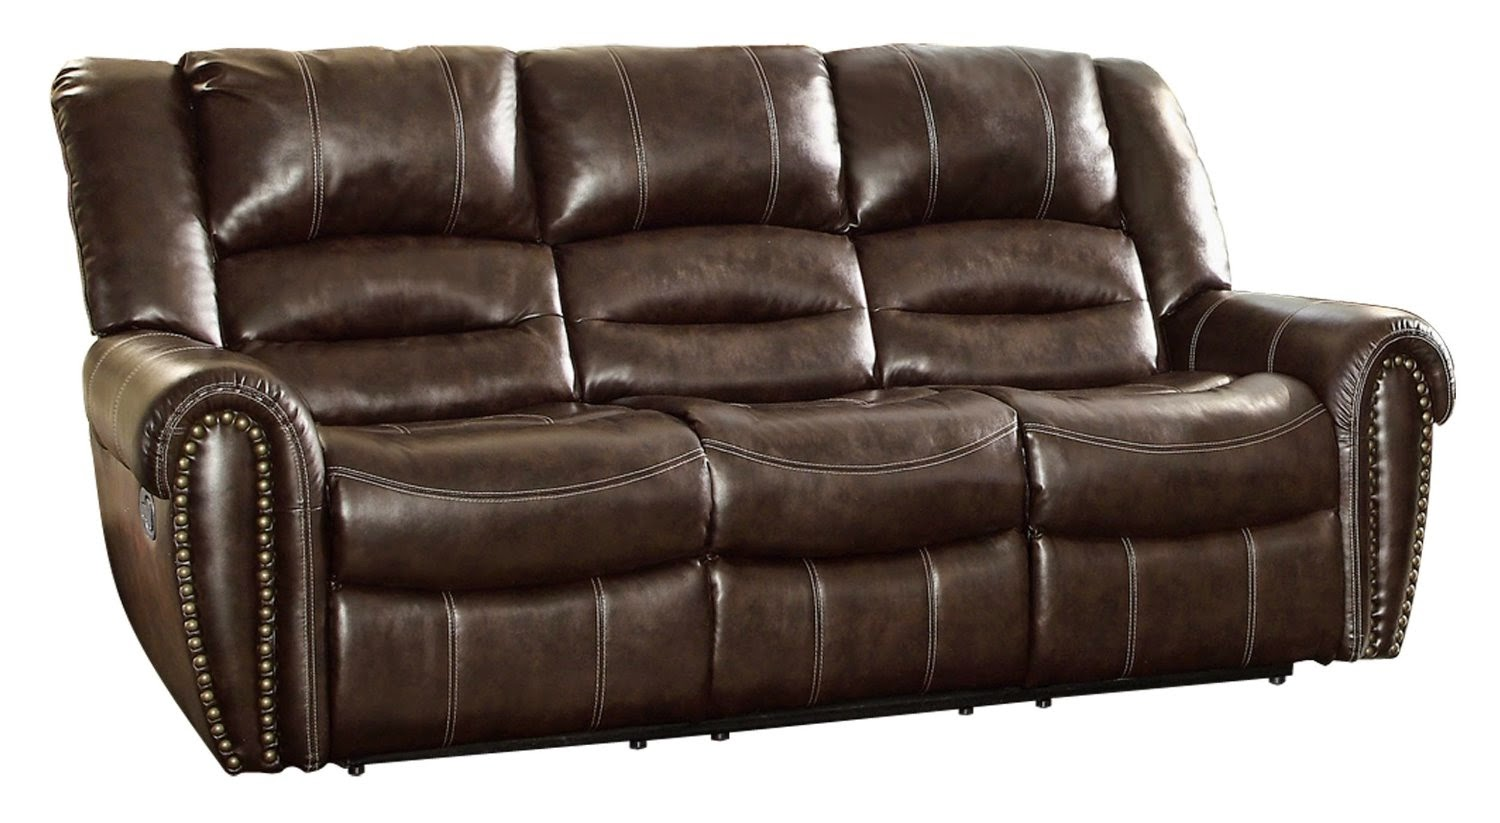 Recliner Sofas Leather Ikea Usa Sofa The Best Reclining Ratings Reviews Bernhardt Weston